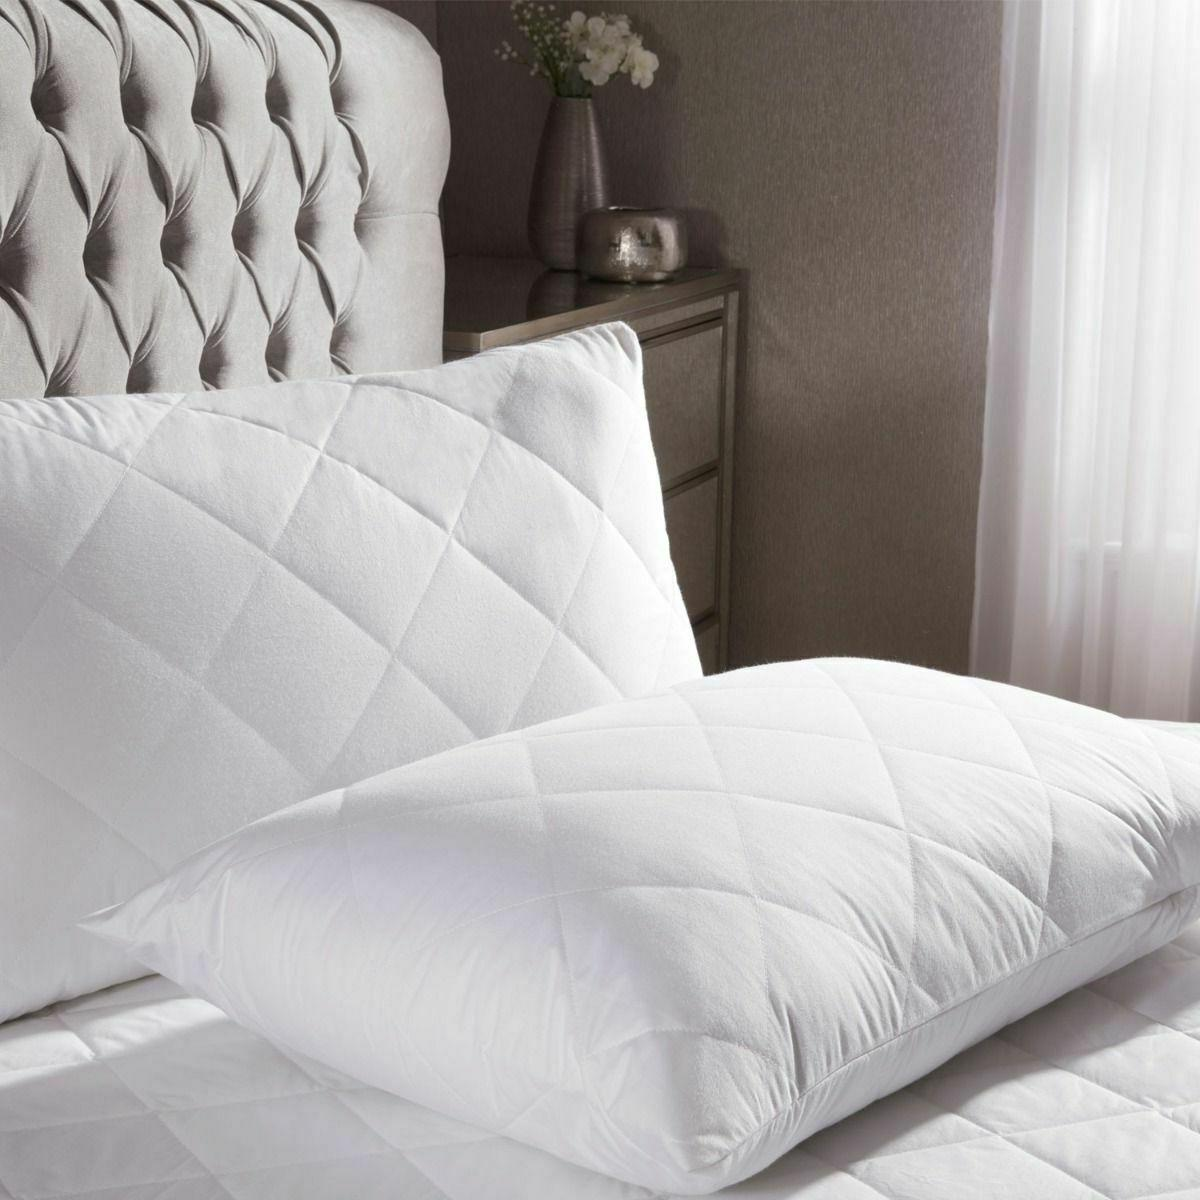 """King Size Protector Pad Topper Cover 16"""" Deep Sheet"""